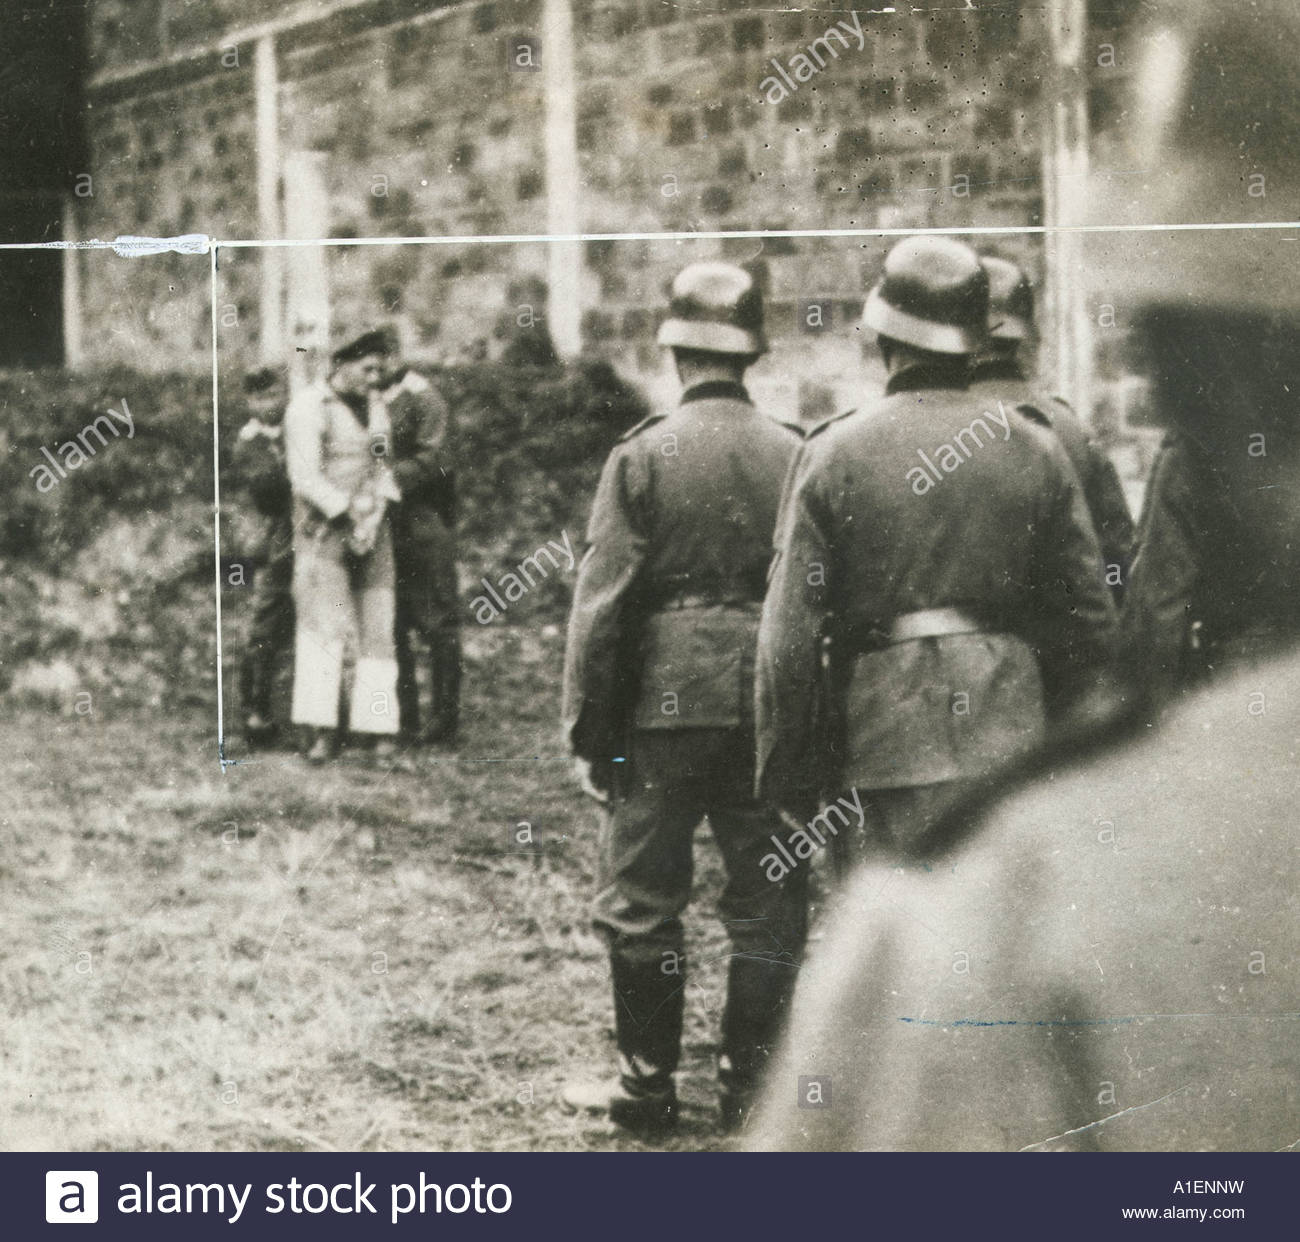 Nazi soldiers prepare to execute a man - Stock Image